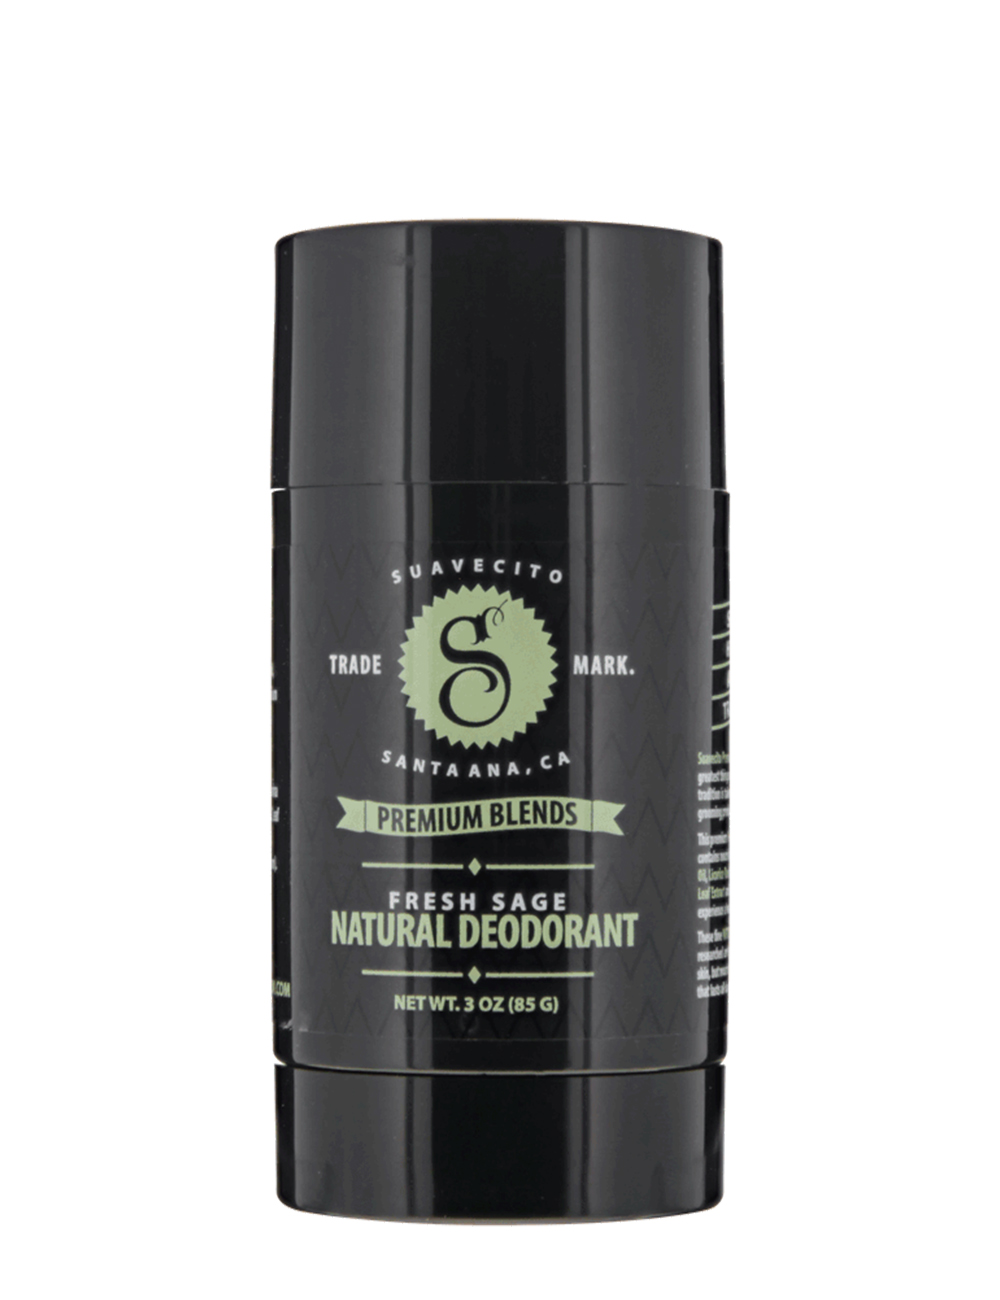 Suavecito Premium Blends Fresh Sage Natural Deodorant